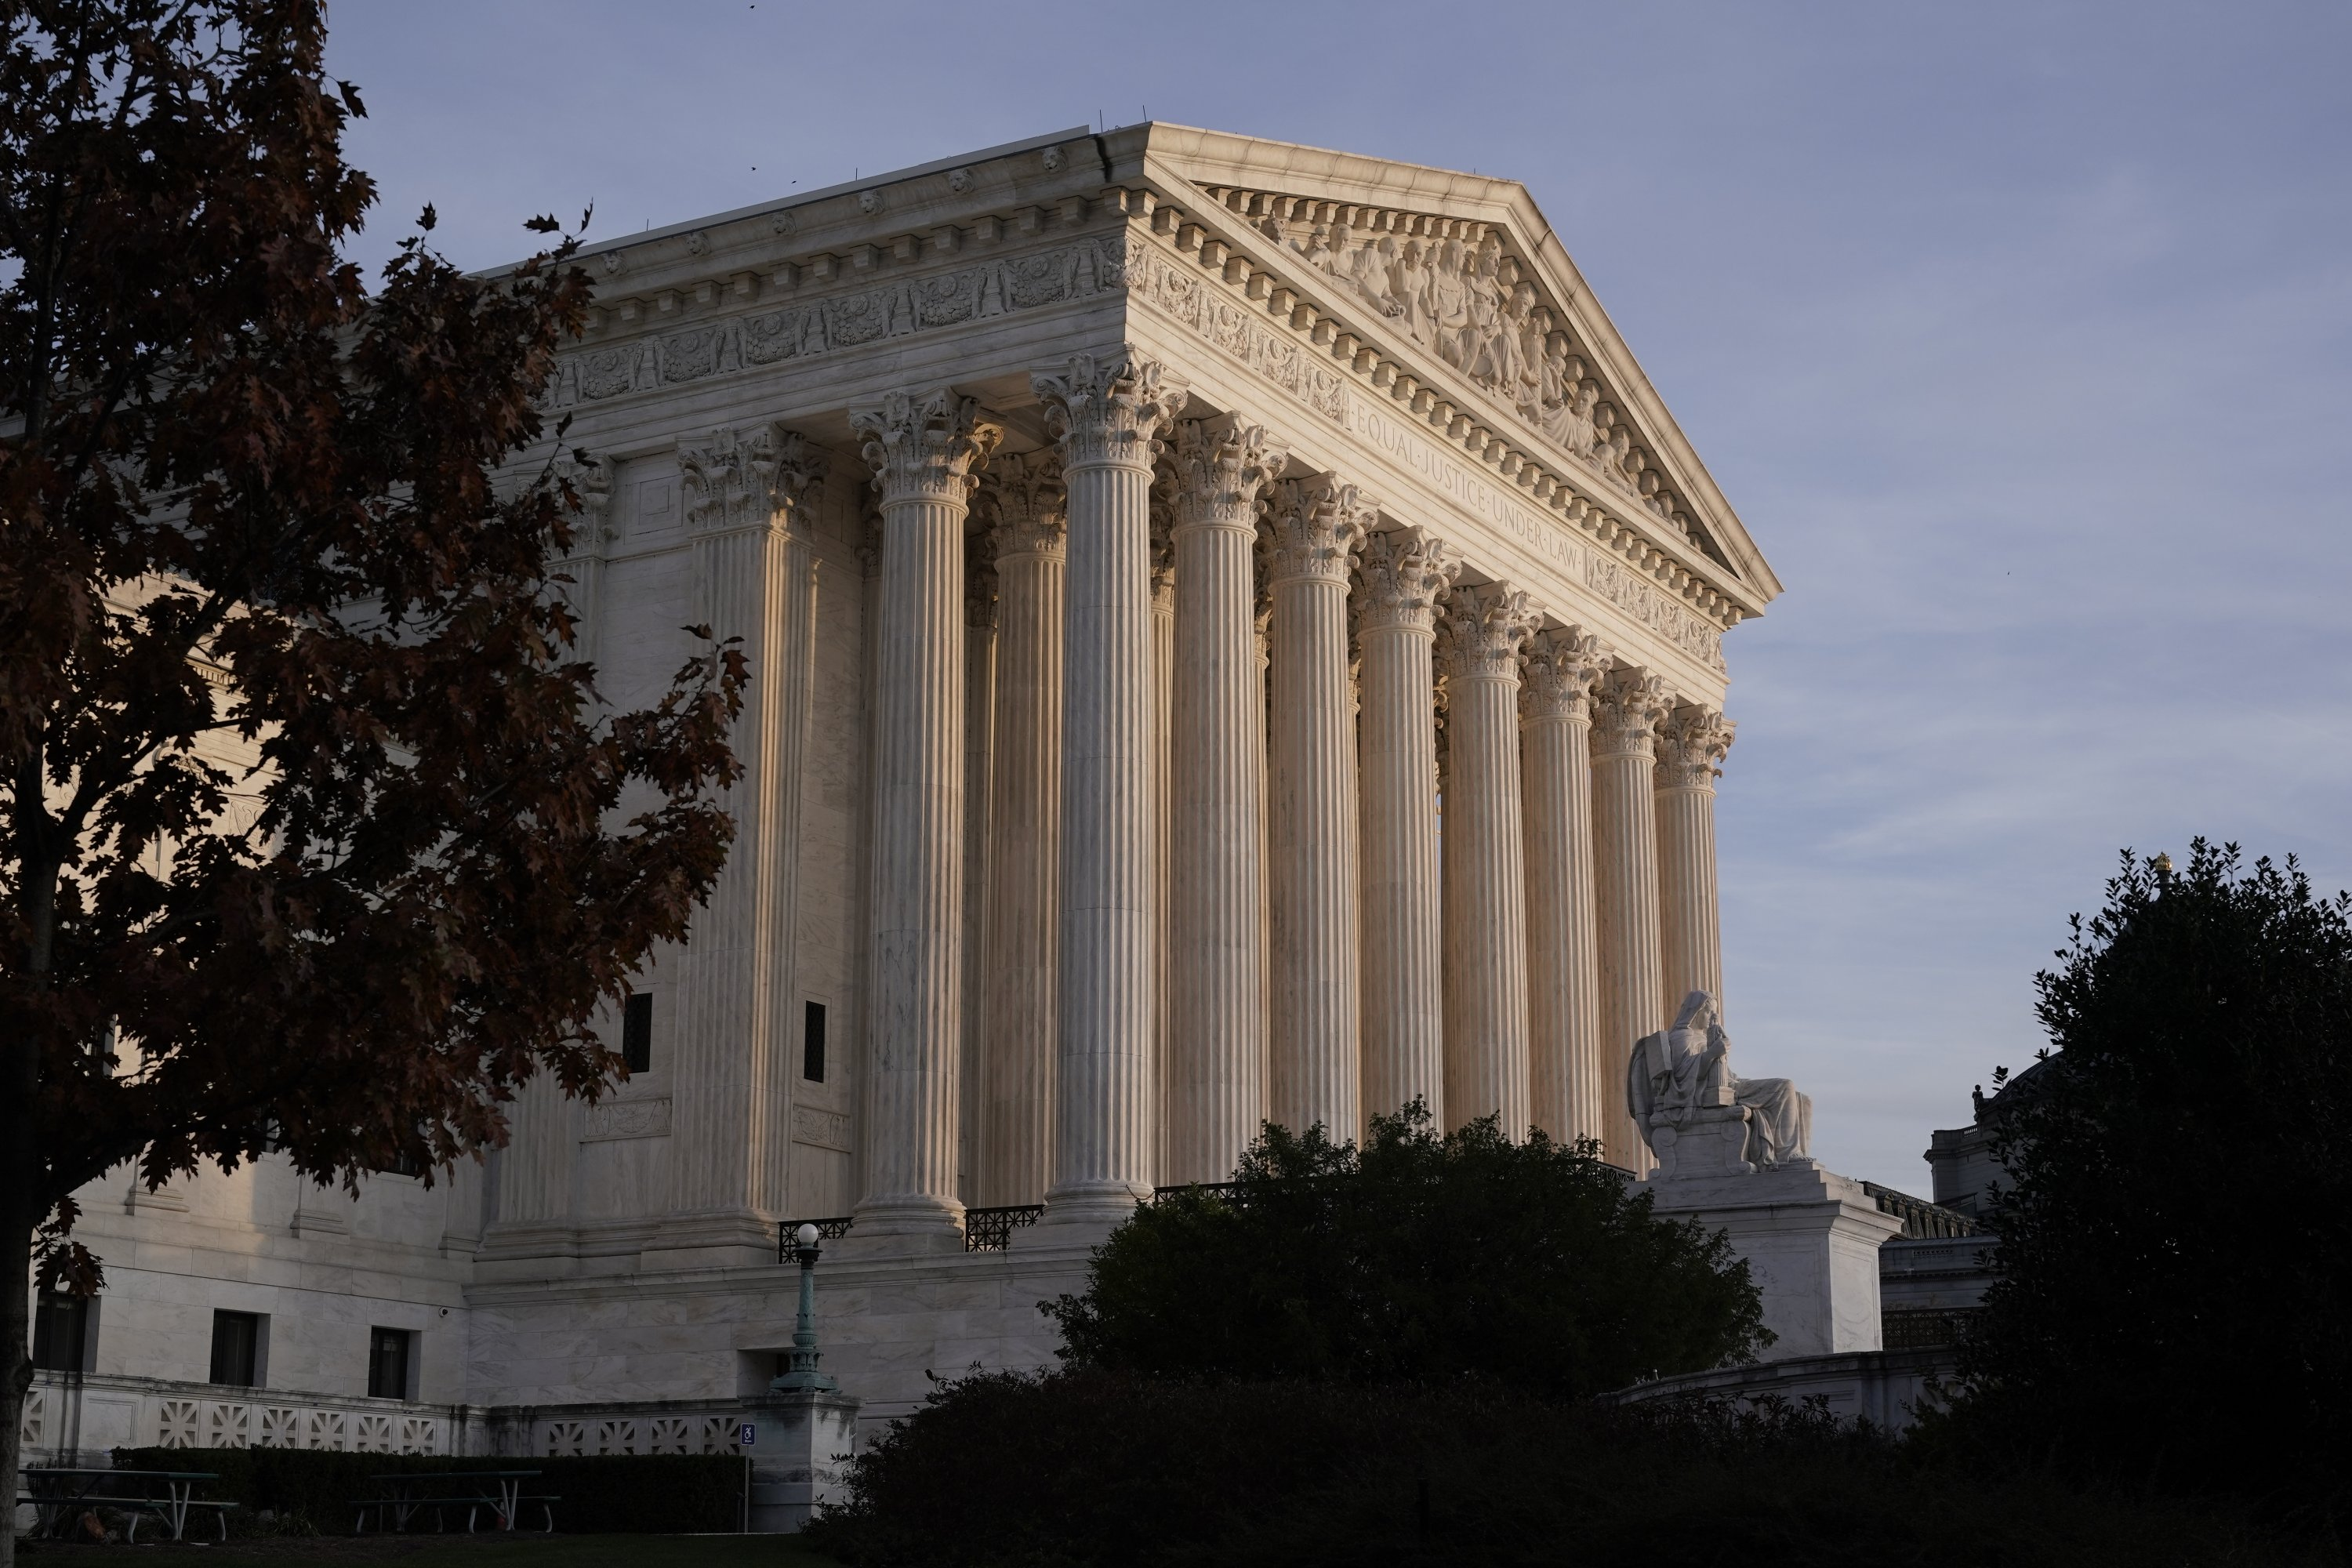 Much at stake as Supreme Court weighs future of 'Obamacare' – Associated Press